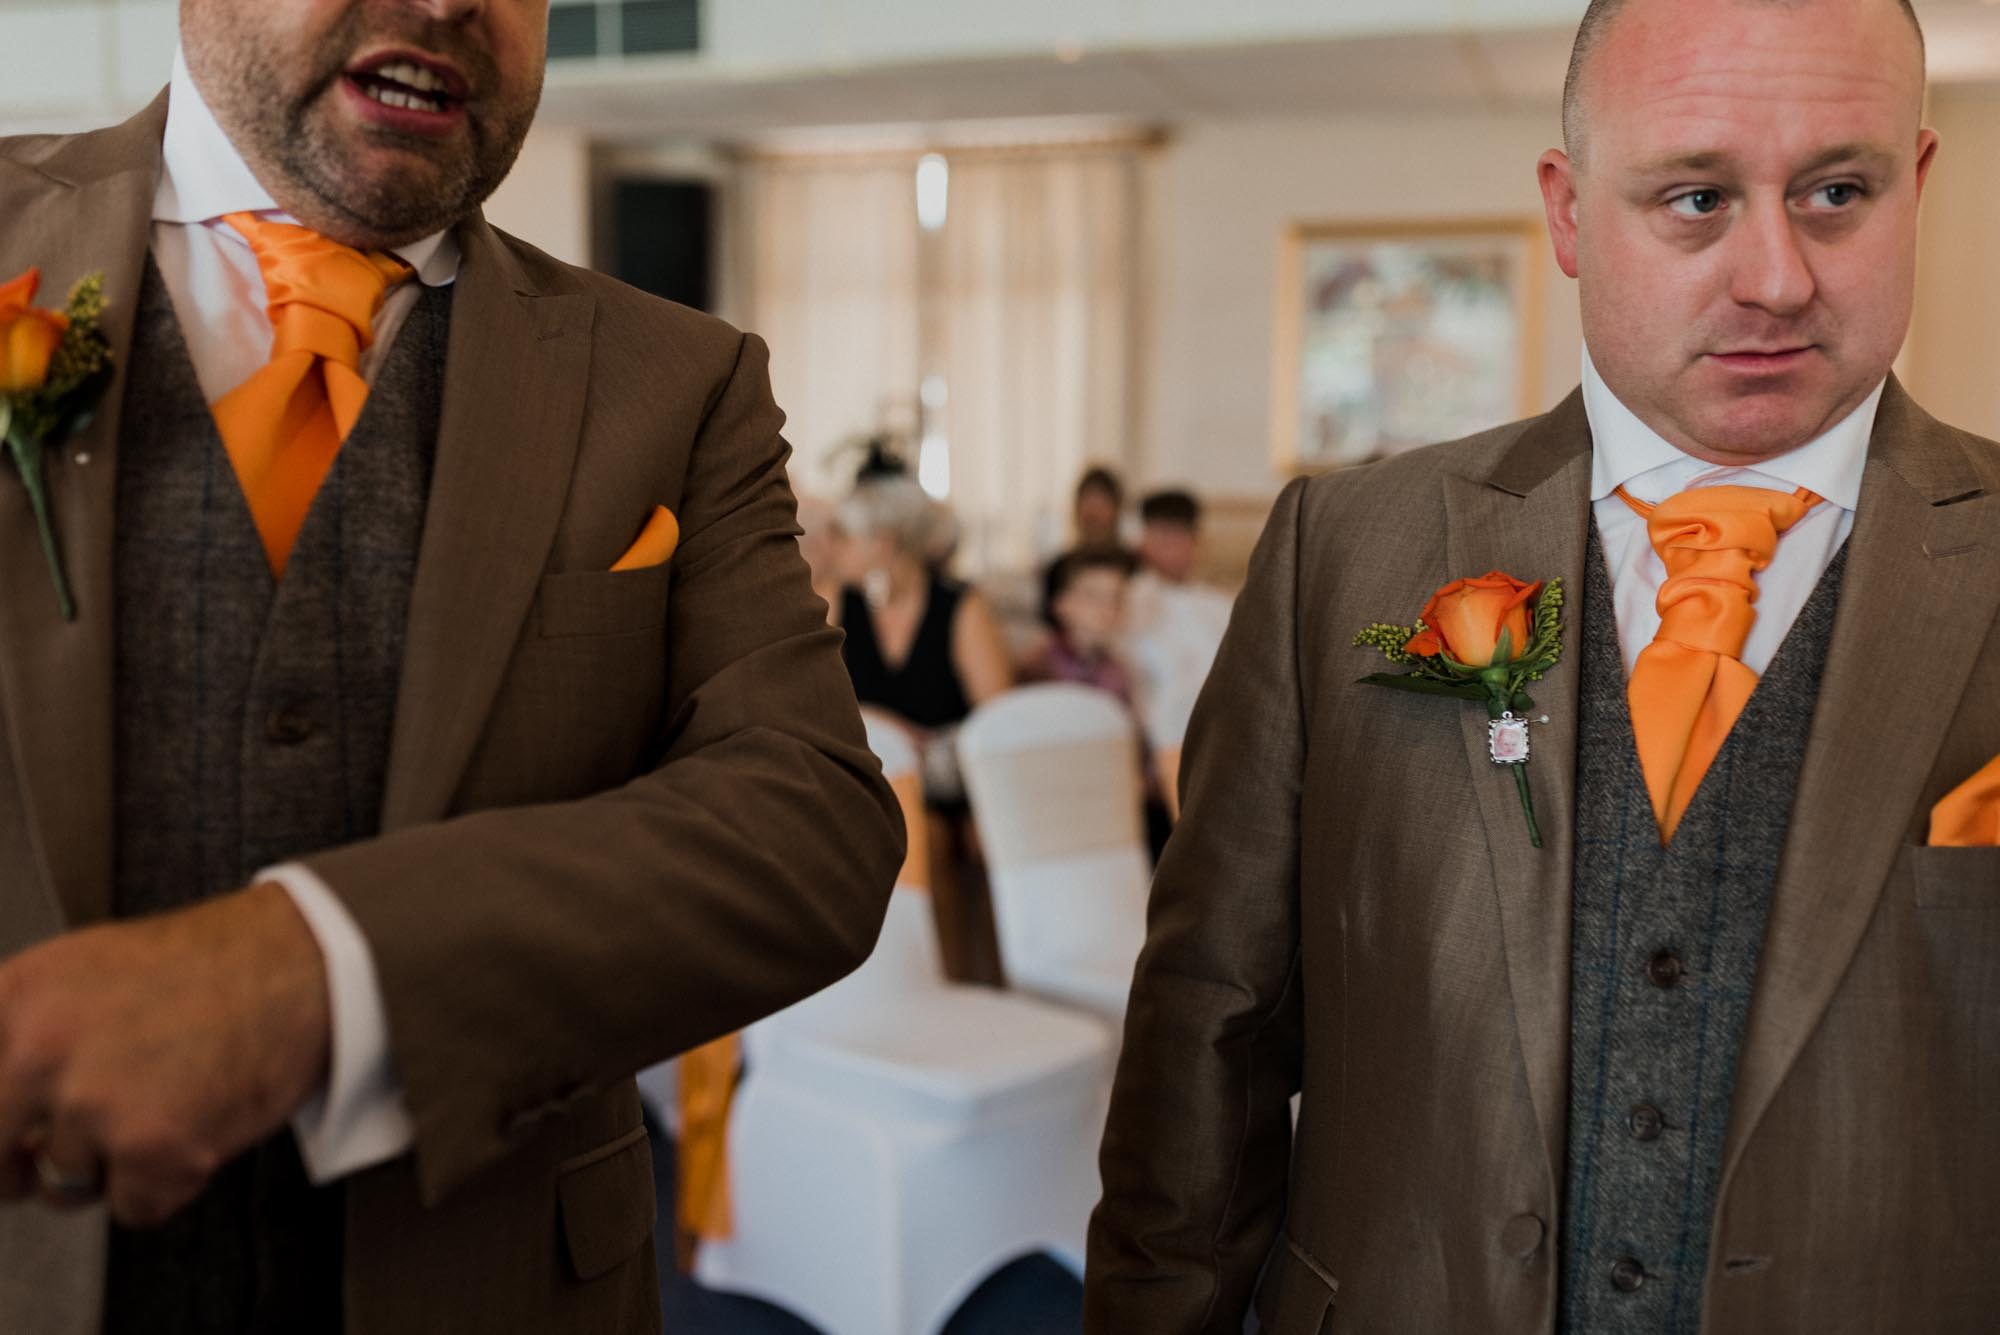 Would You Like To Talk To Me About Photographing Your Wedding Tg_button Hrefhttps App Studioninja Co Jlm_wedding_photography Contact Colororange